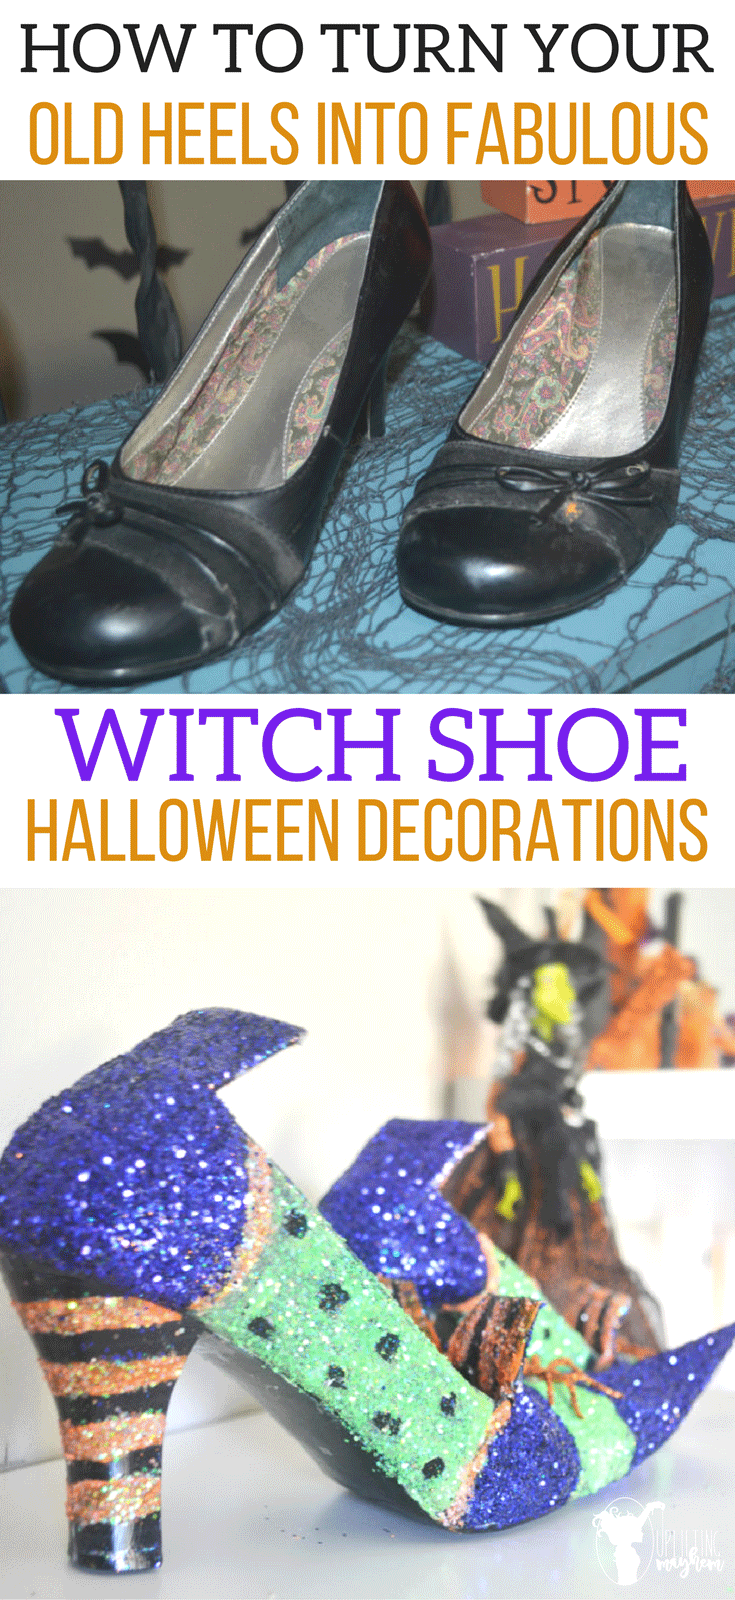 How to turn your Heels into Fabulous Witch Shoe Halloween Decoration